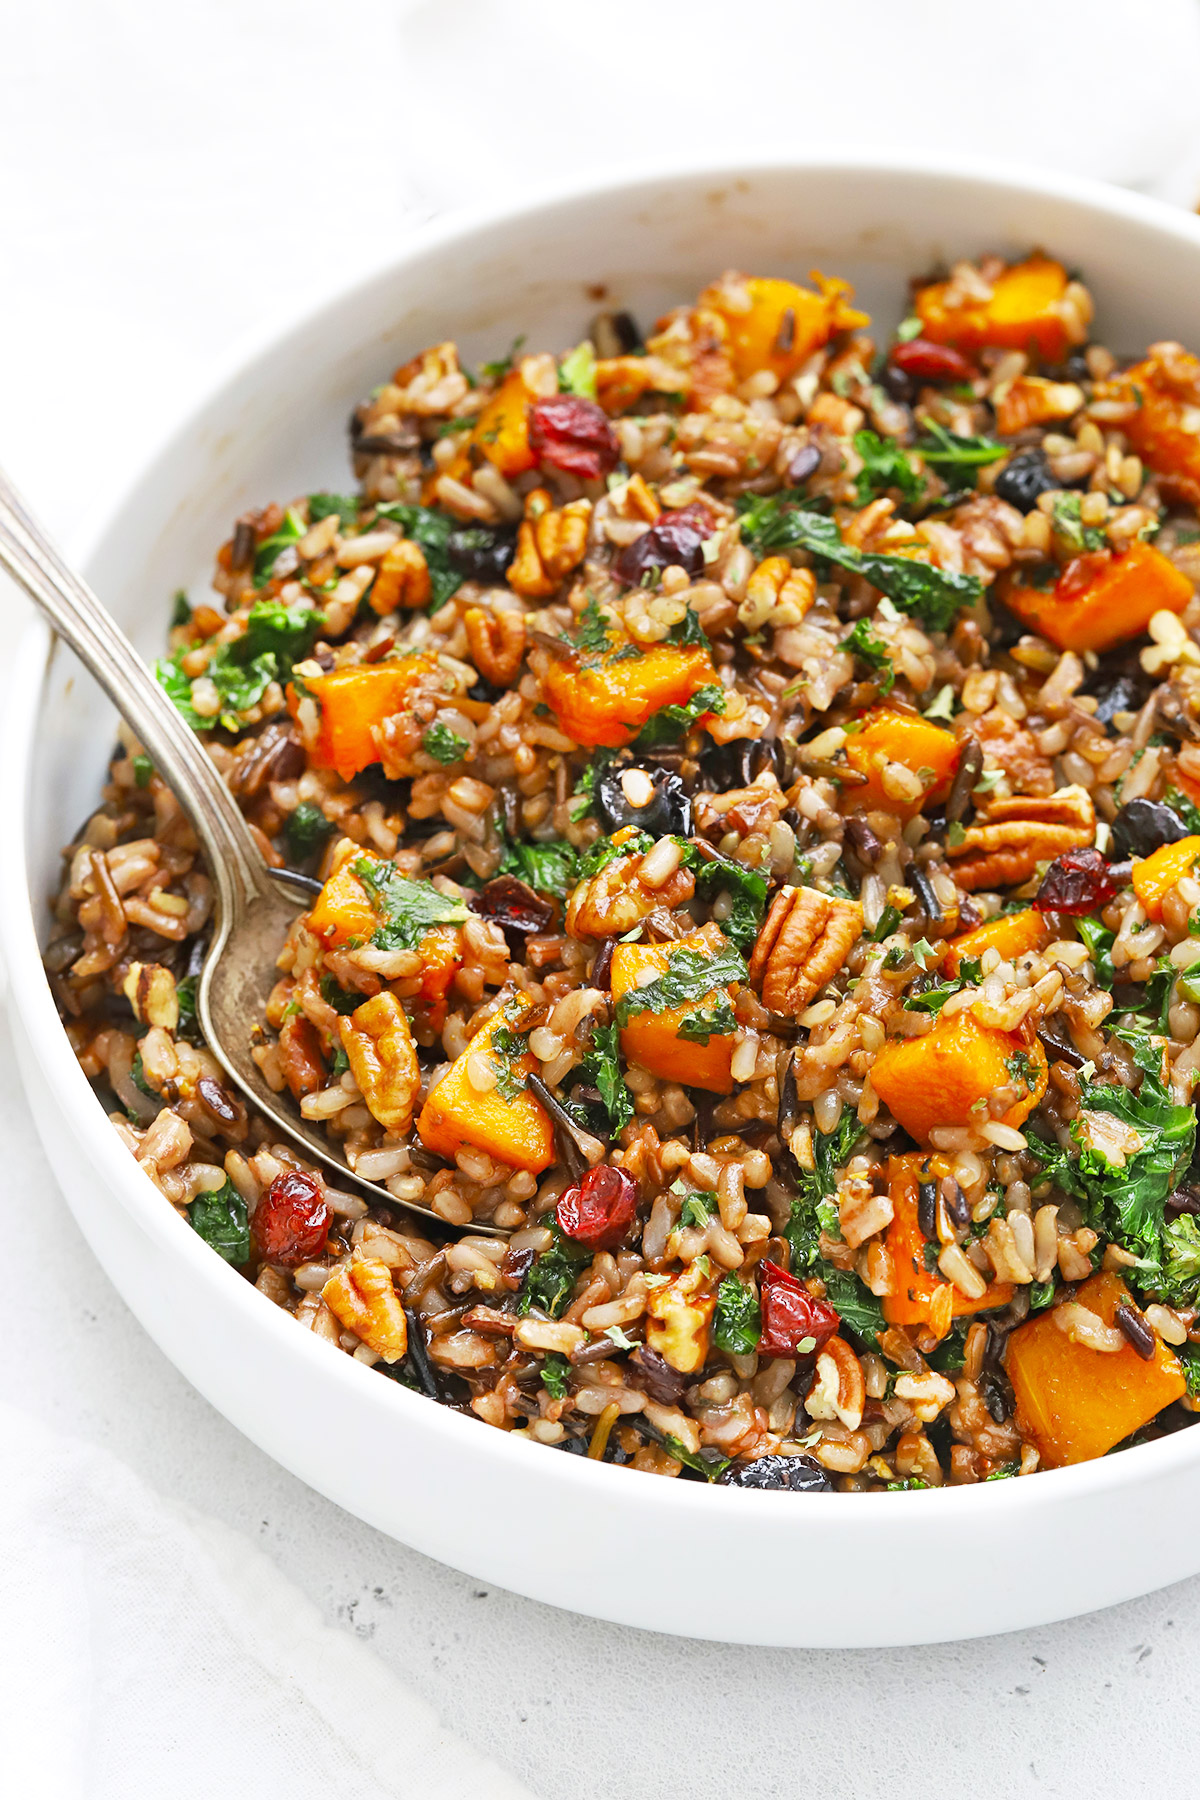 Front view of a white serving dish of Wild Rice Pilaf with Butternut Squash, Pecans, and Cranberries on a white background